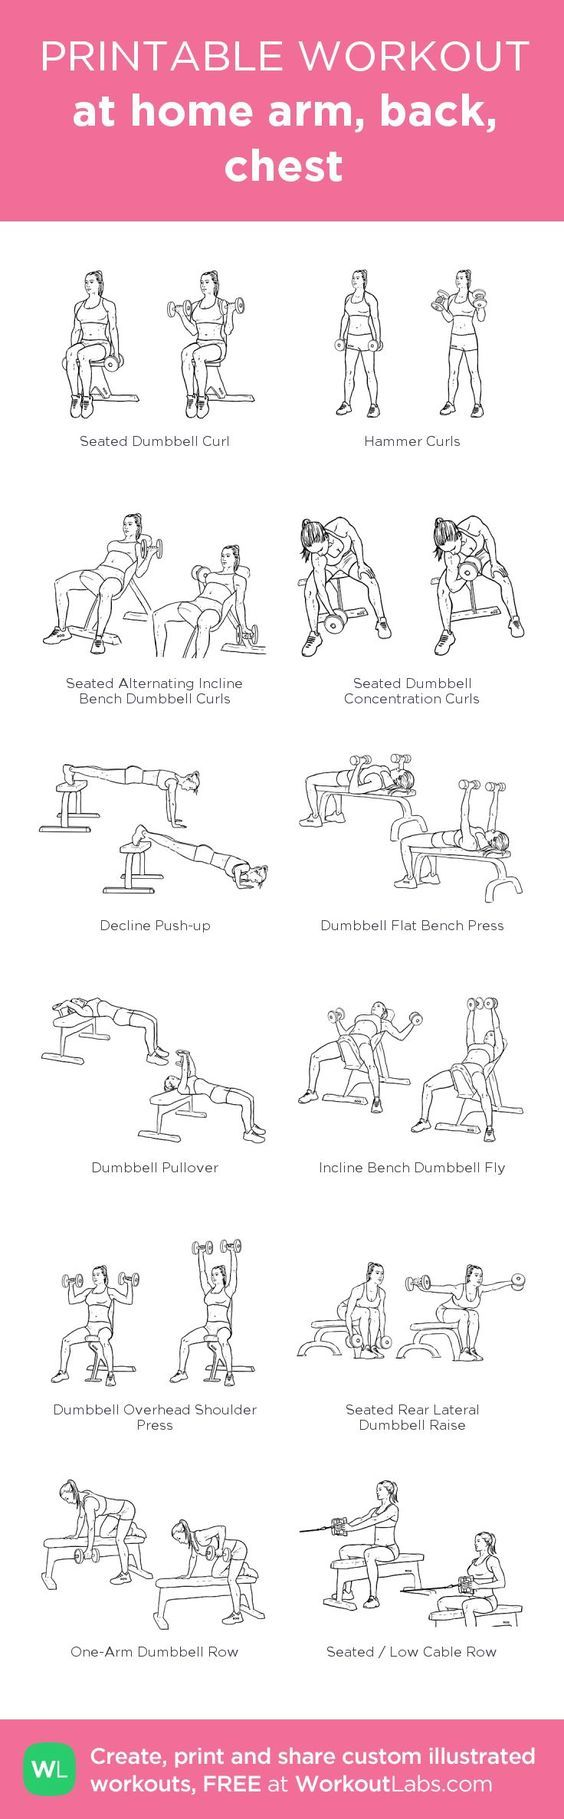 Pin by Melanie Duncan on Health and Exercise | Workout